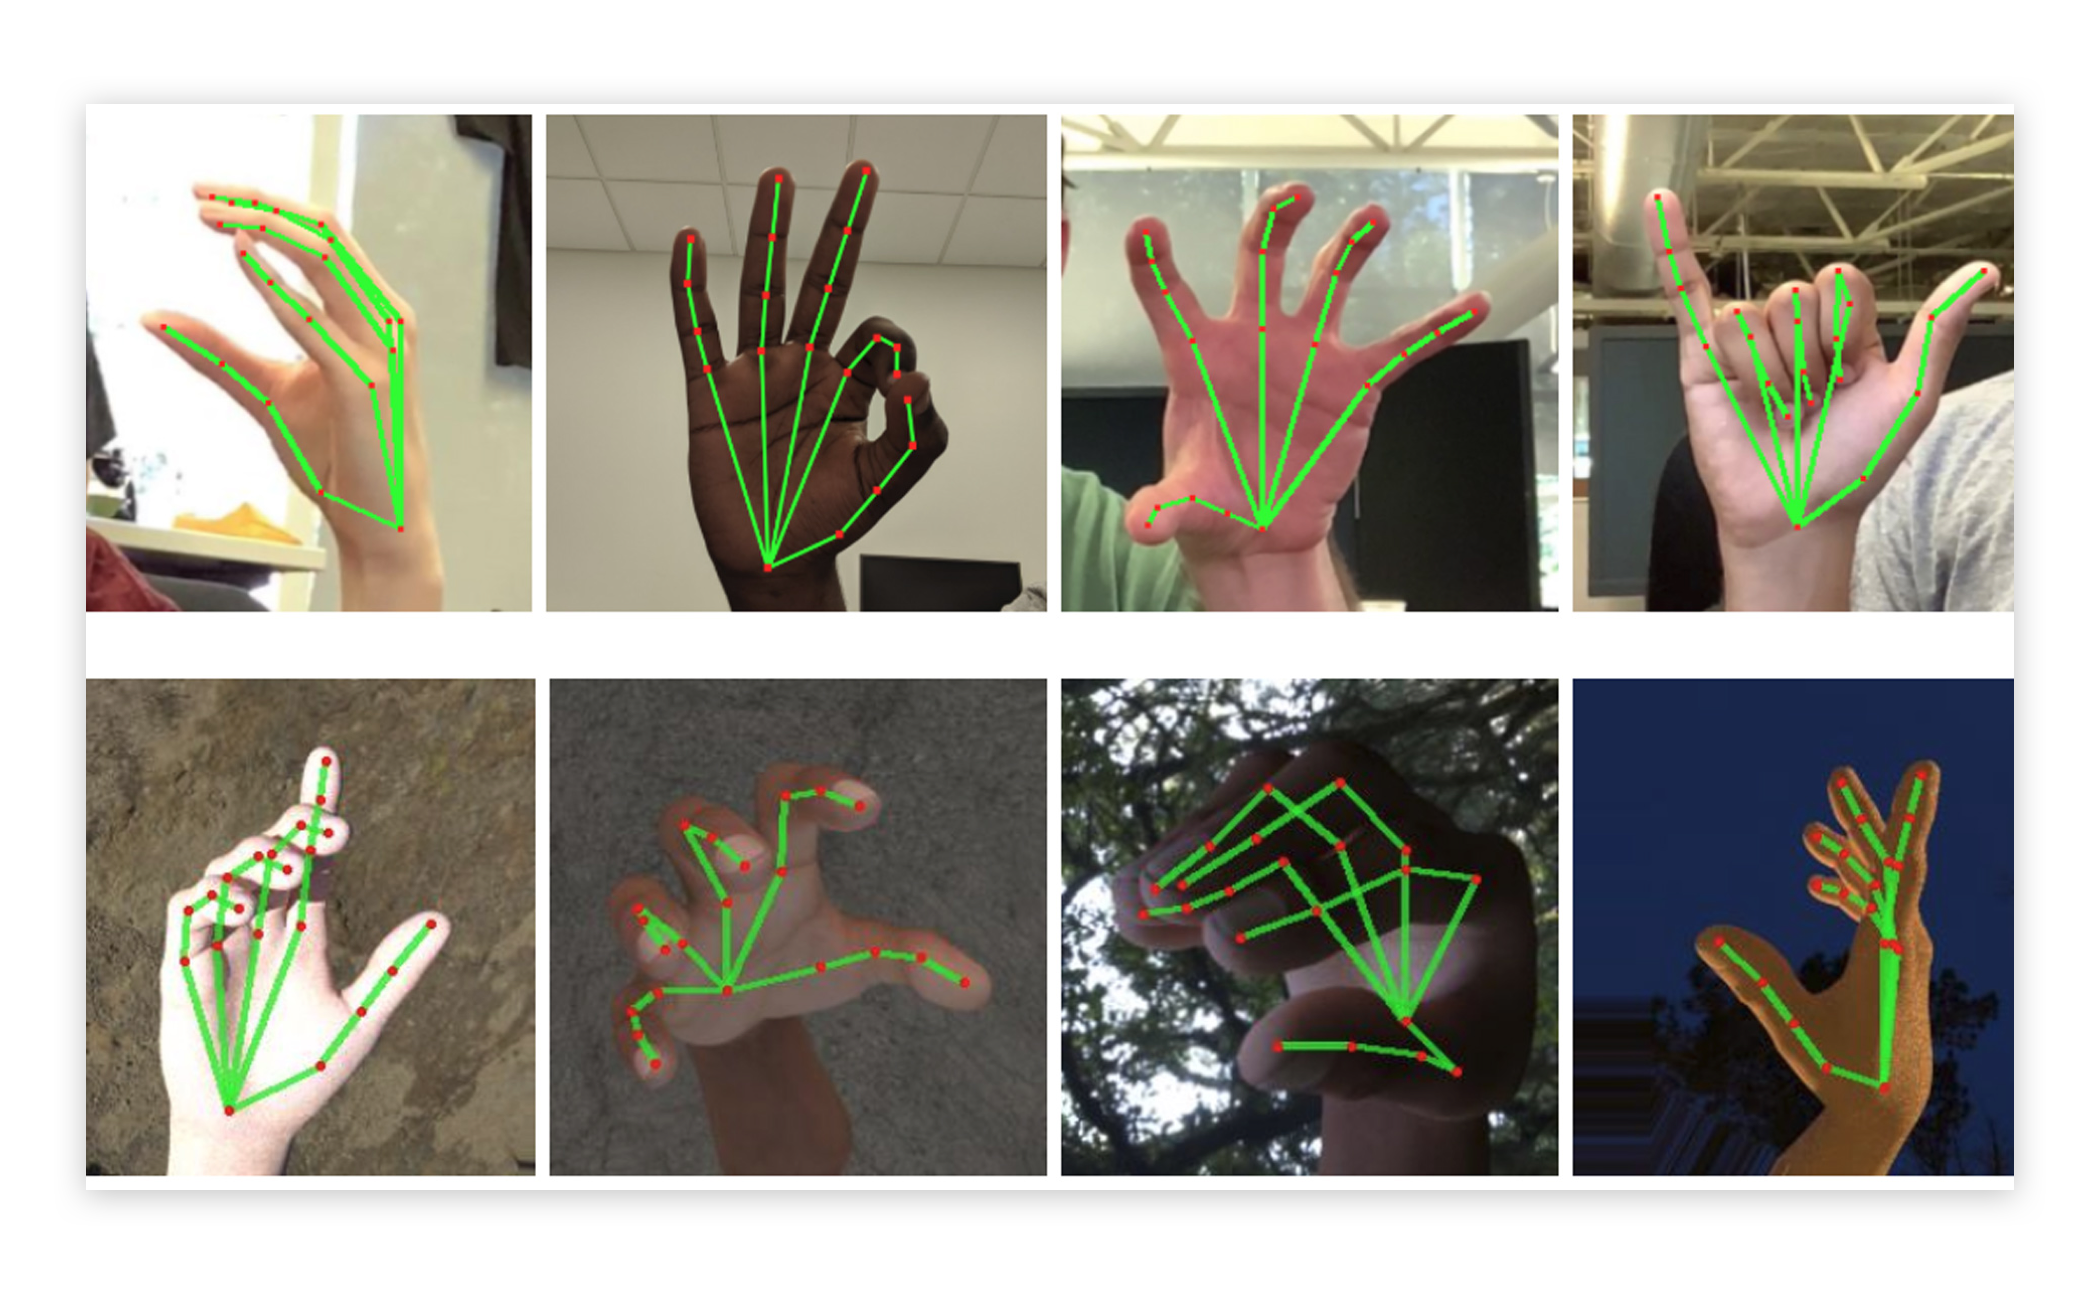 Screenshots of Google's image recognition processing hand gestures.